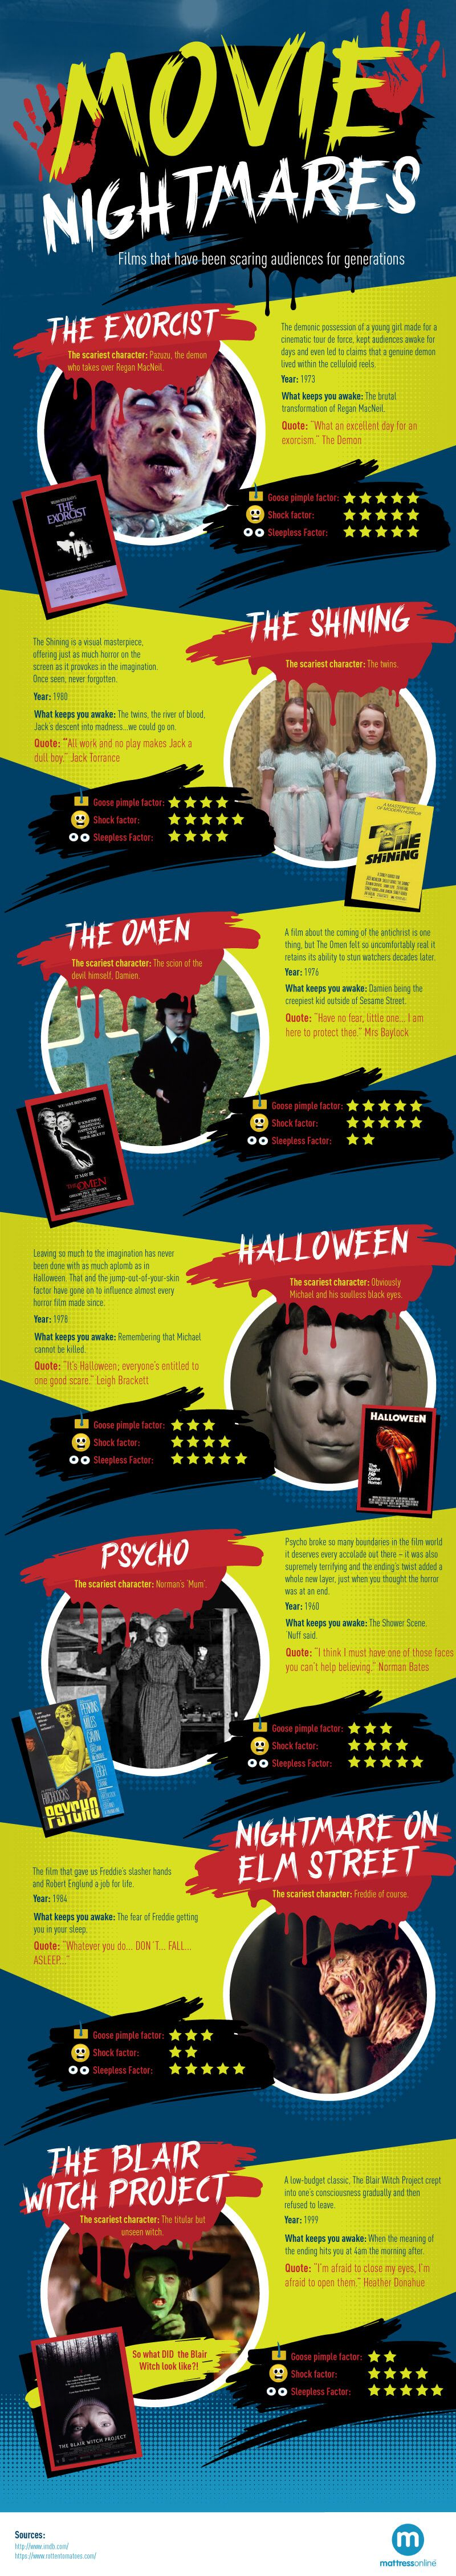 Movie Nightmares infographic